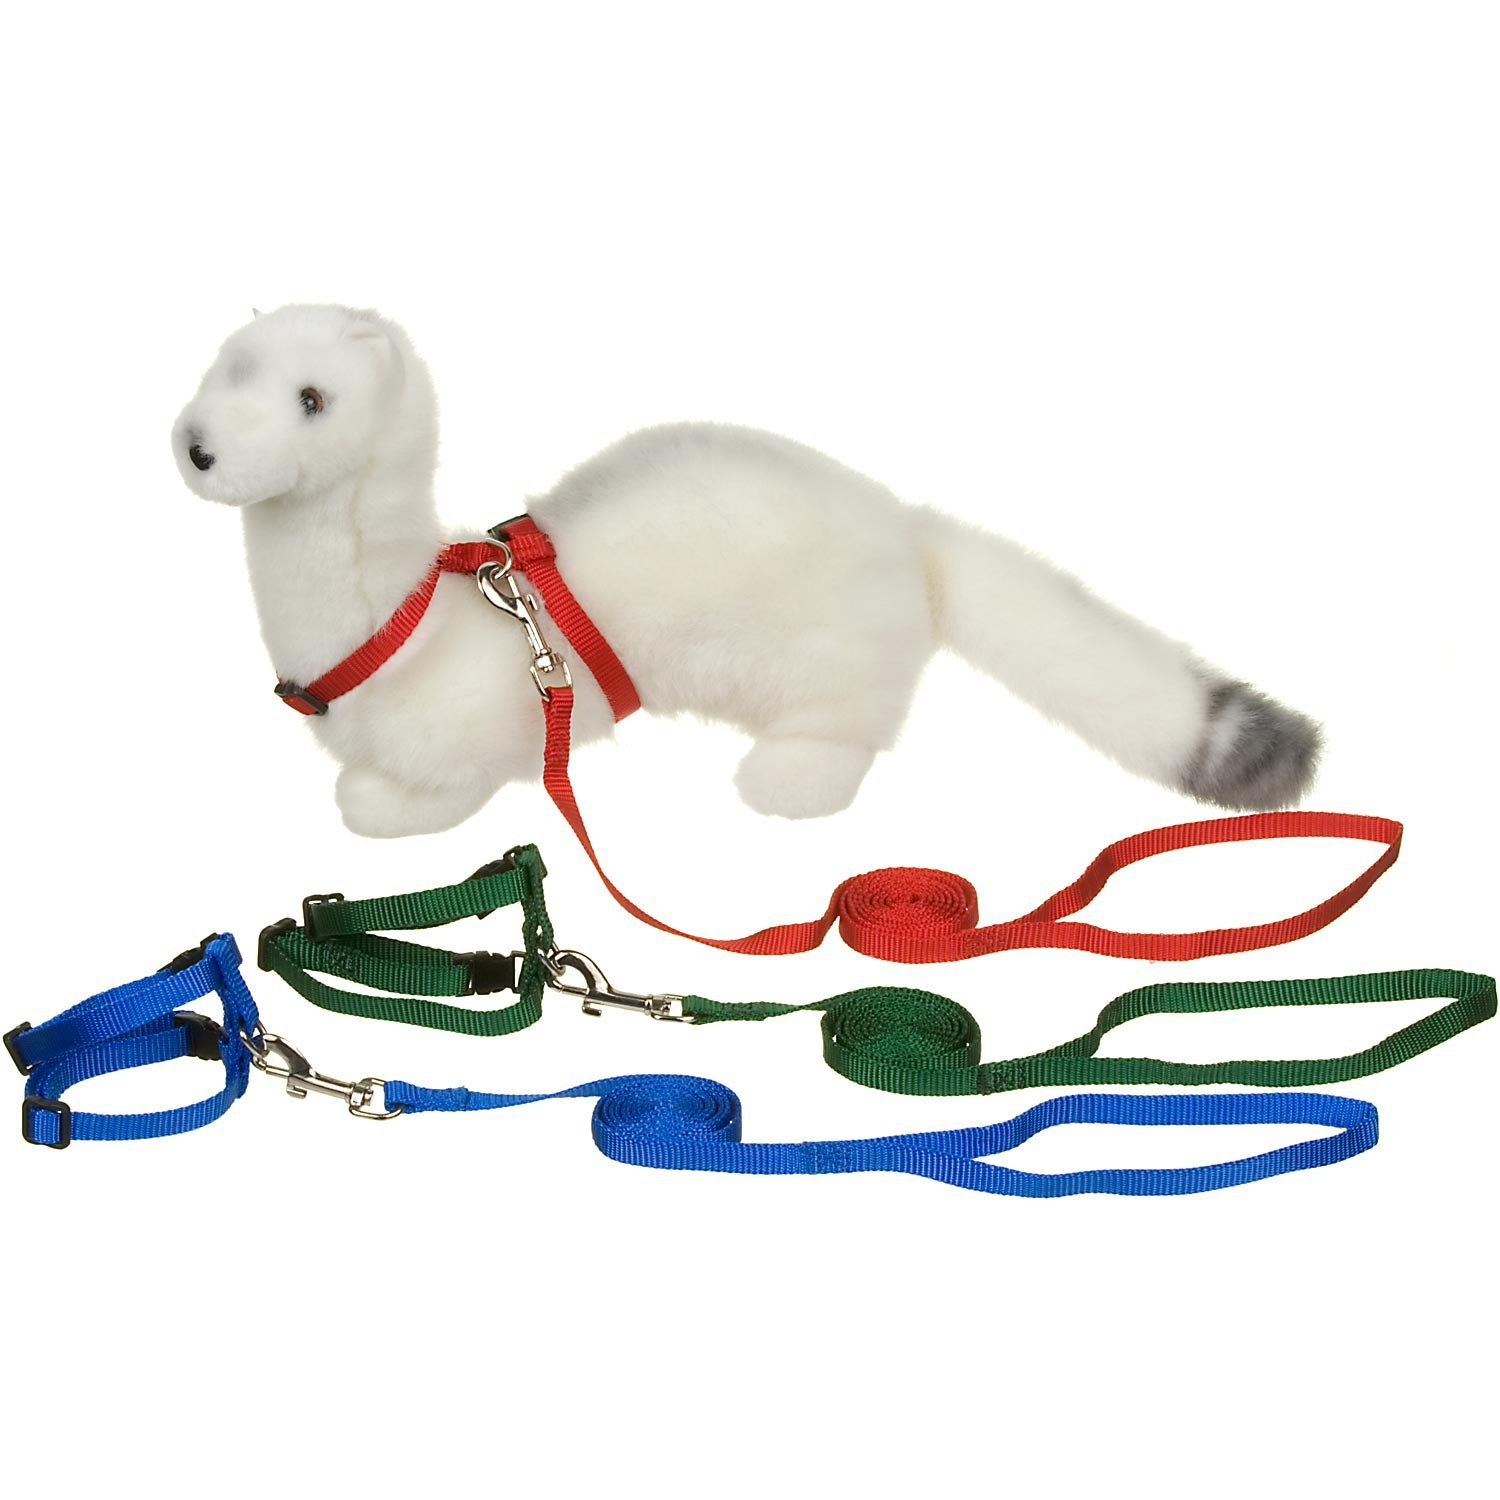 PETCO Deluxe Ferret Harness and Lead Set, Color:Assorted by Ferret Frenzy by Ferret Frenzy